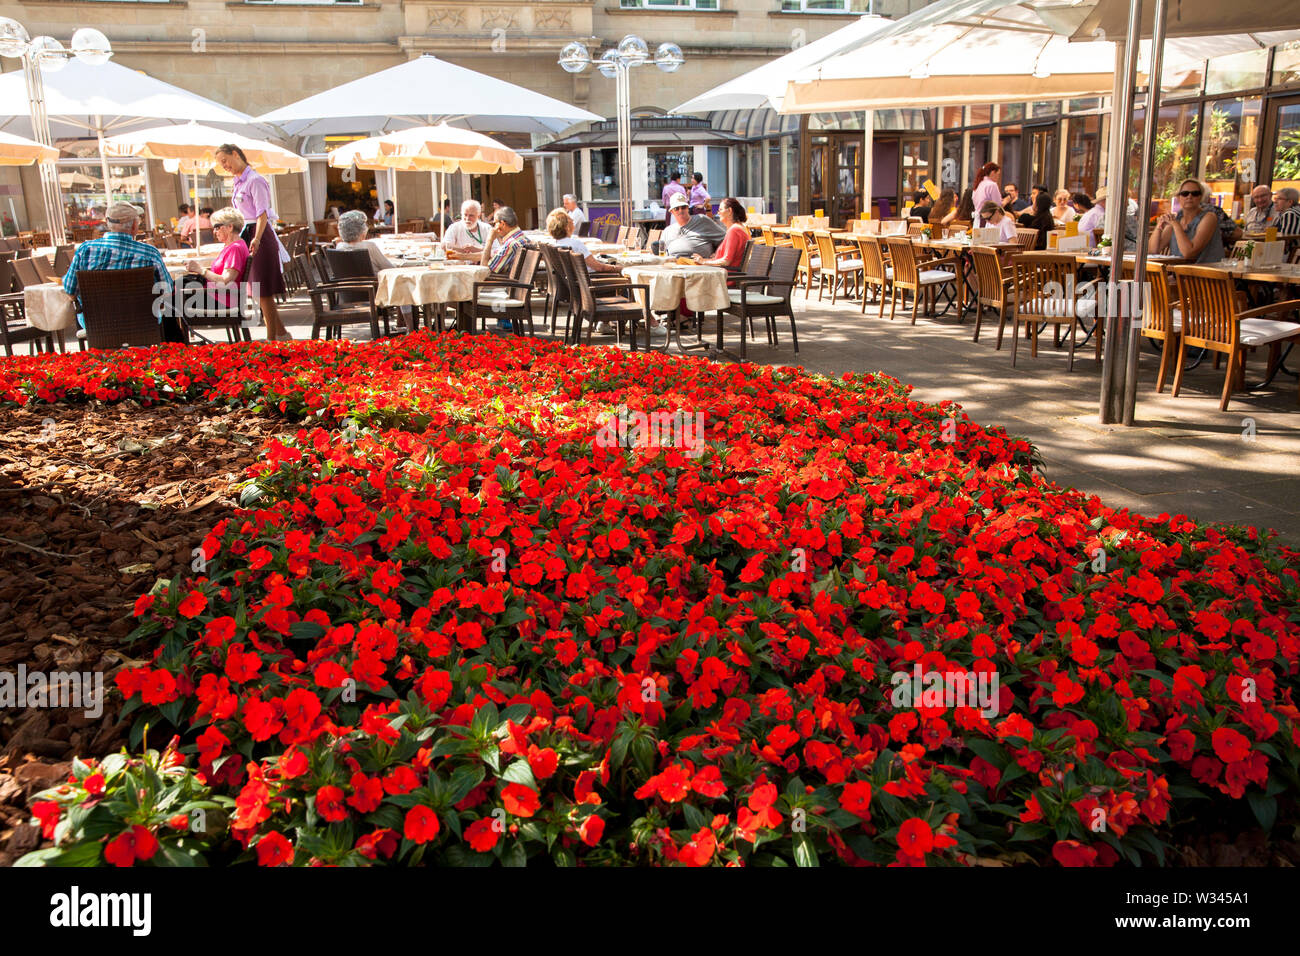 terrace of the Cafe Reichard near the cathedral, Cologne, Germany.  Terrasse des Cafe Reichard am Dom, Koeln, Deutschland. - Stock Image